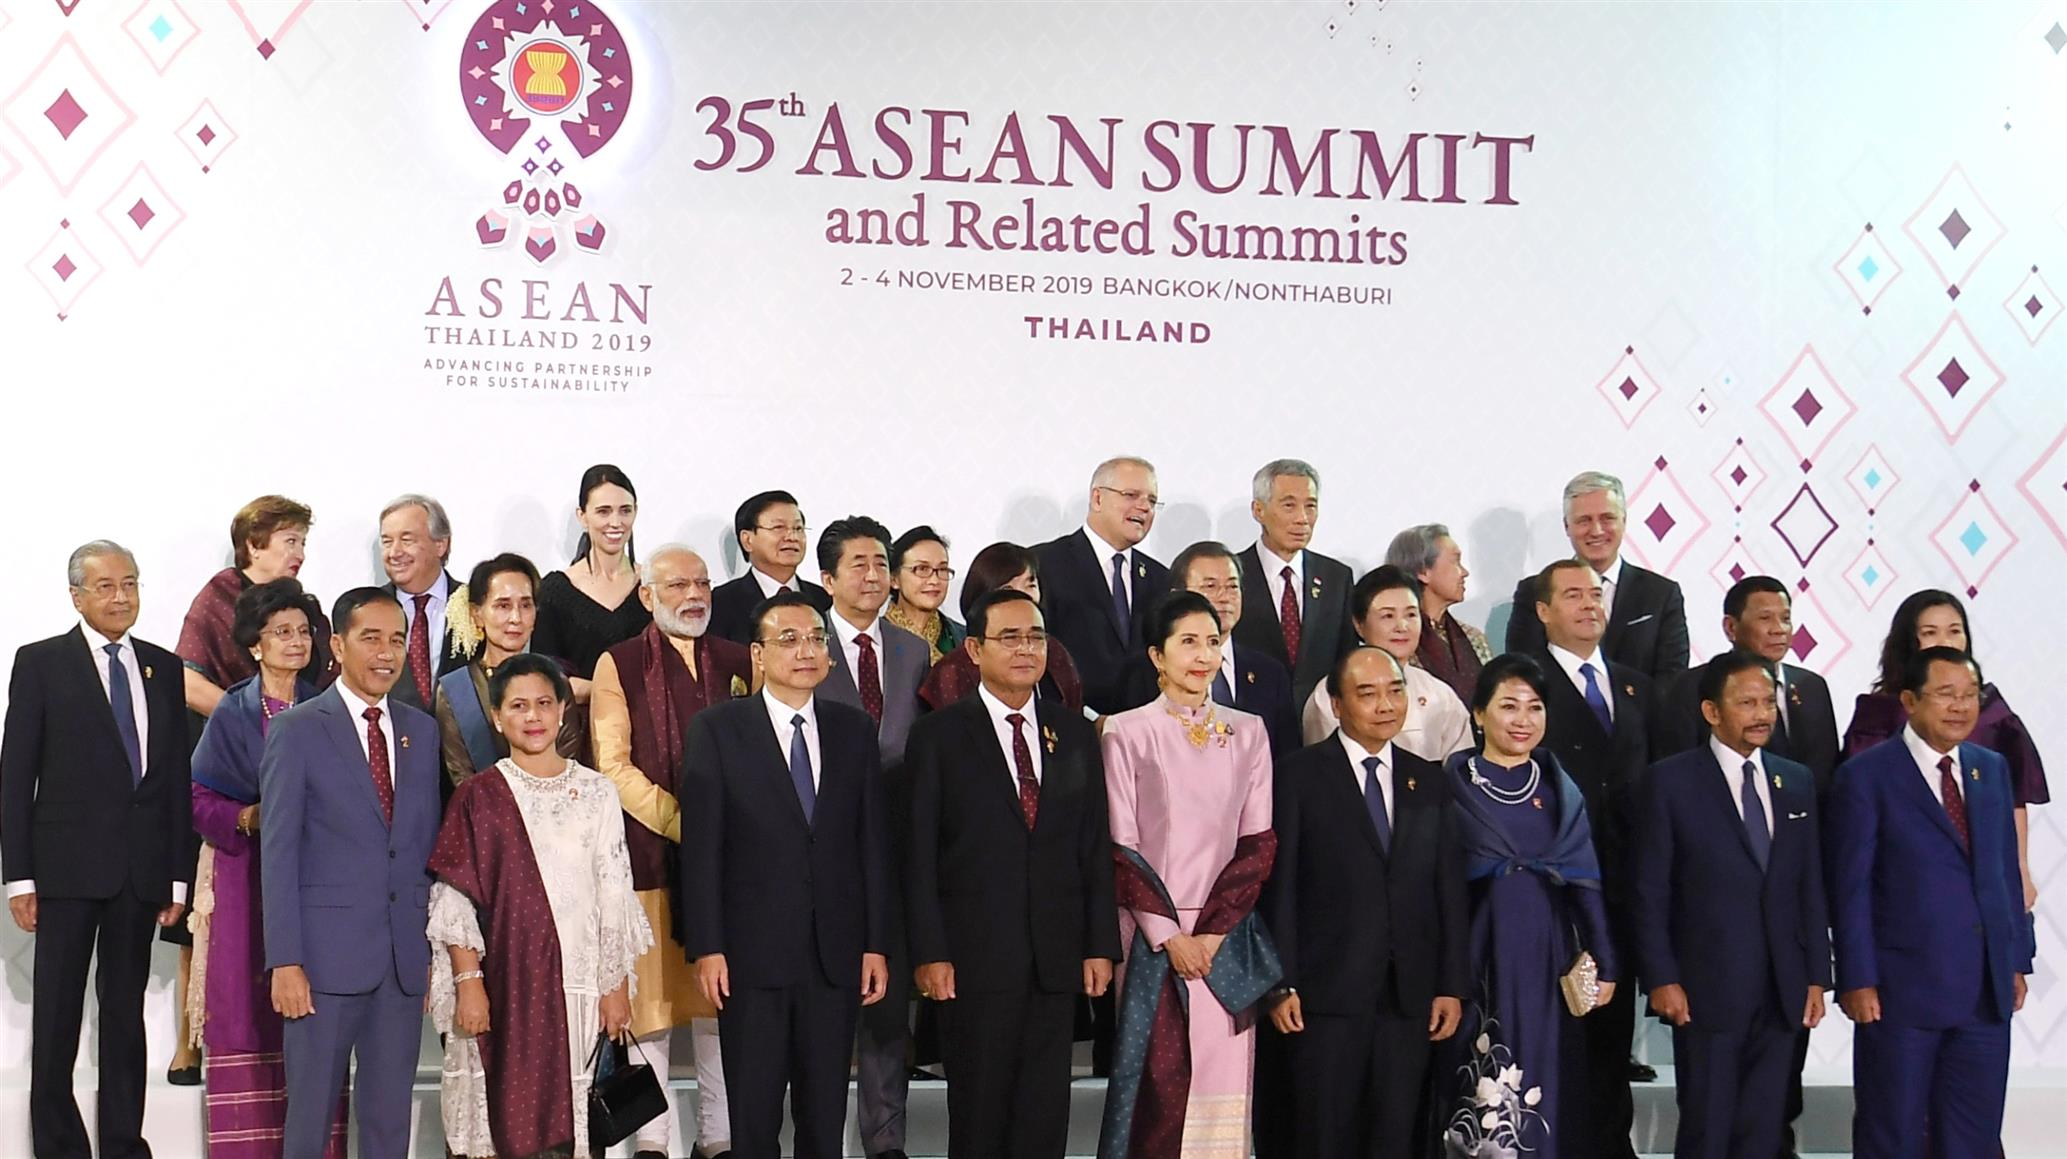 Group photograph 35th ASEAN Summit and Related Summits Bangkok, Thailand